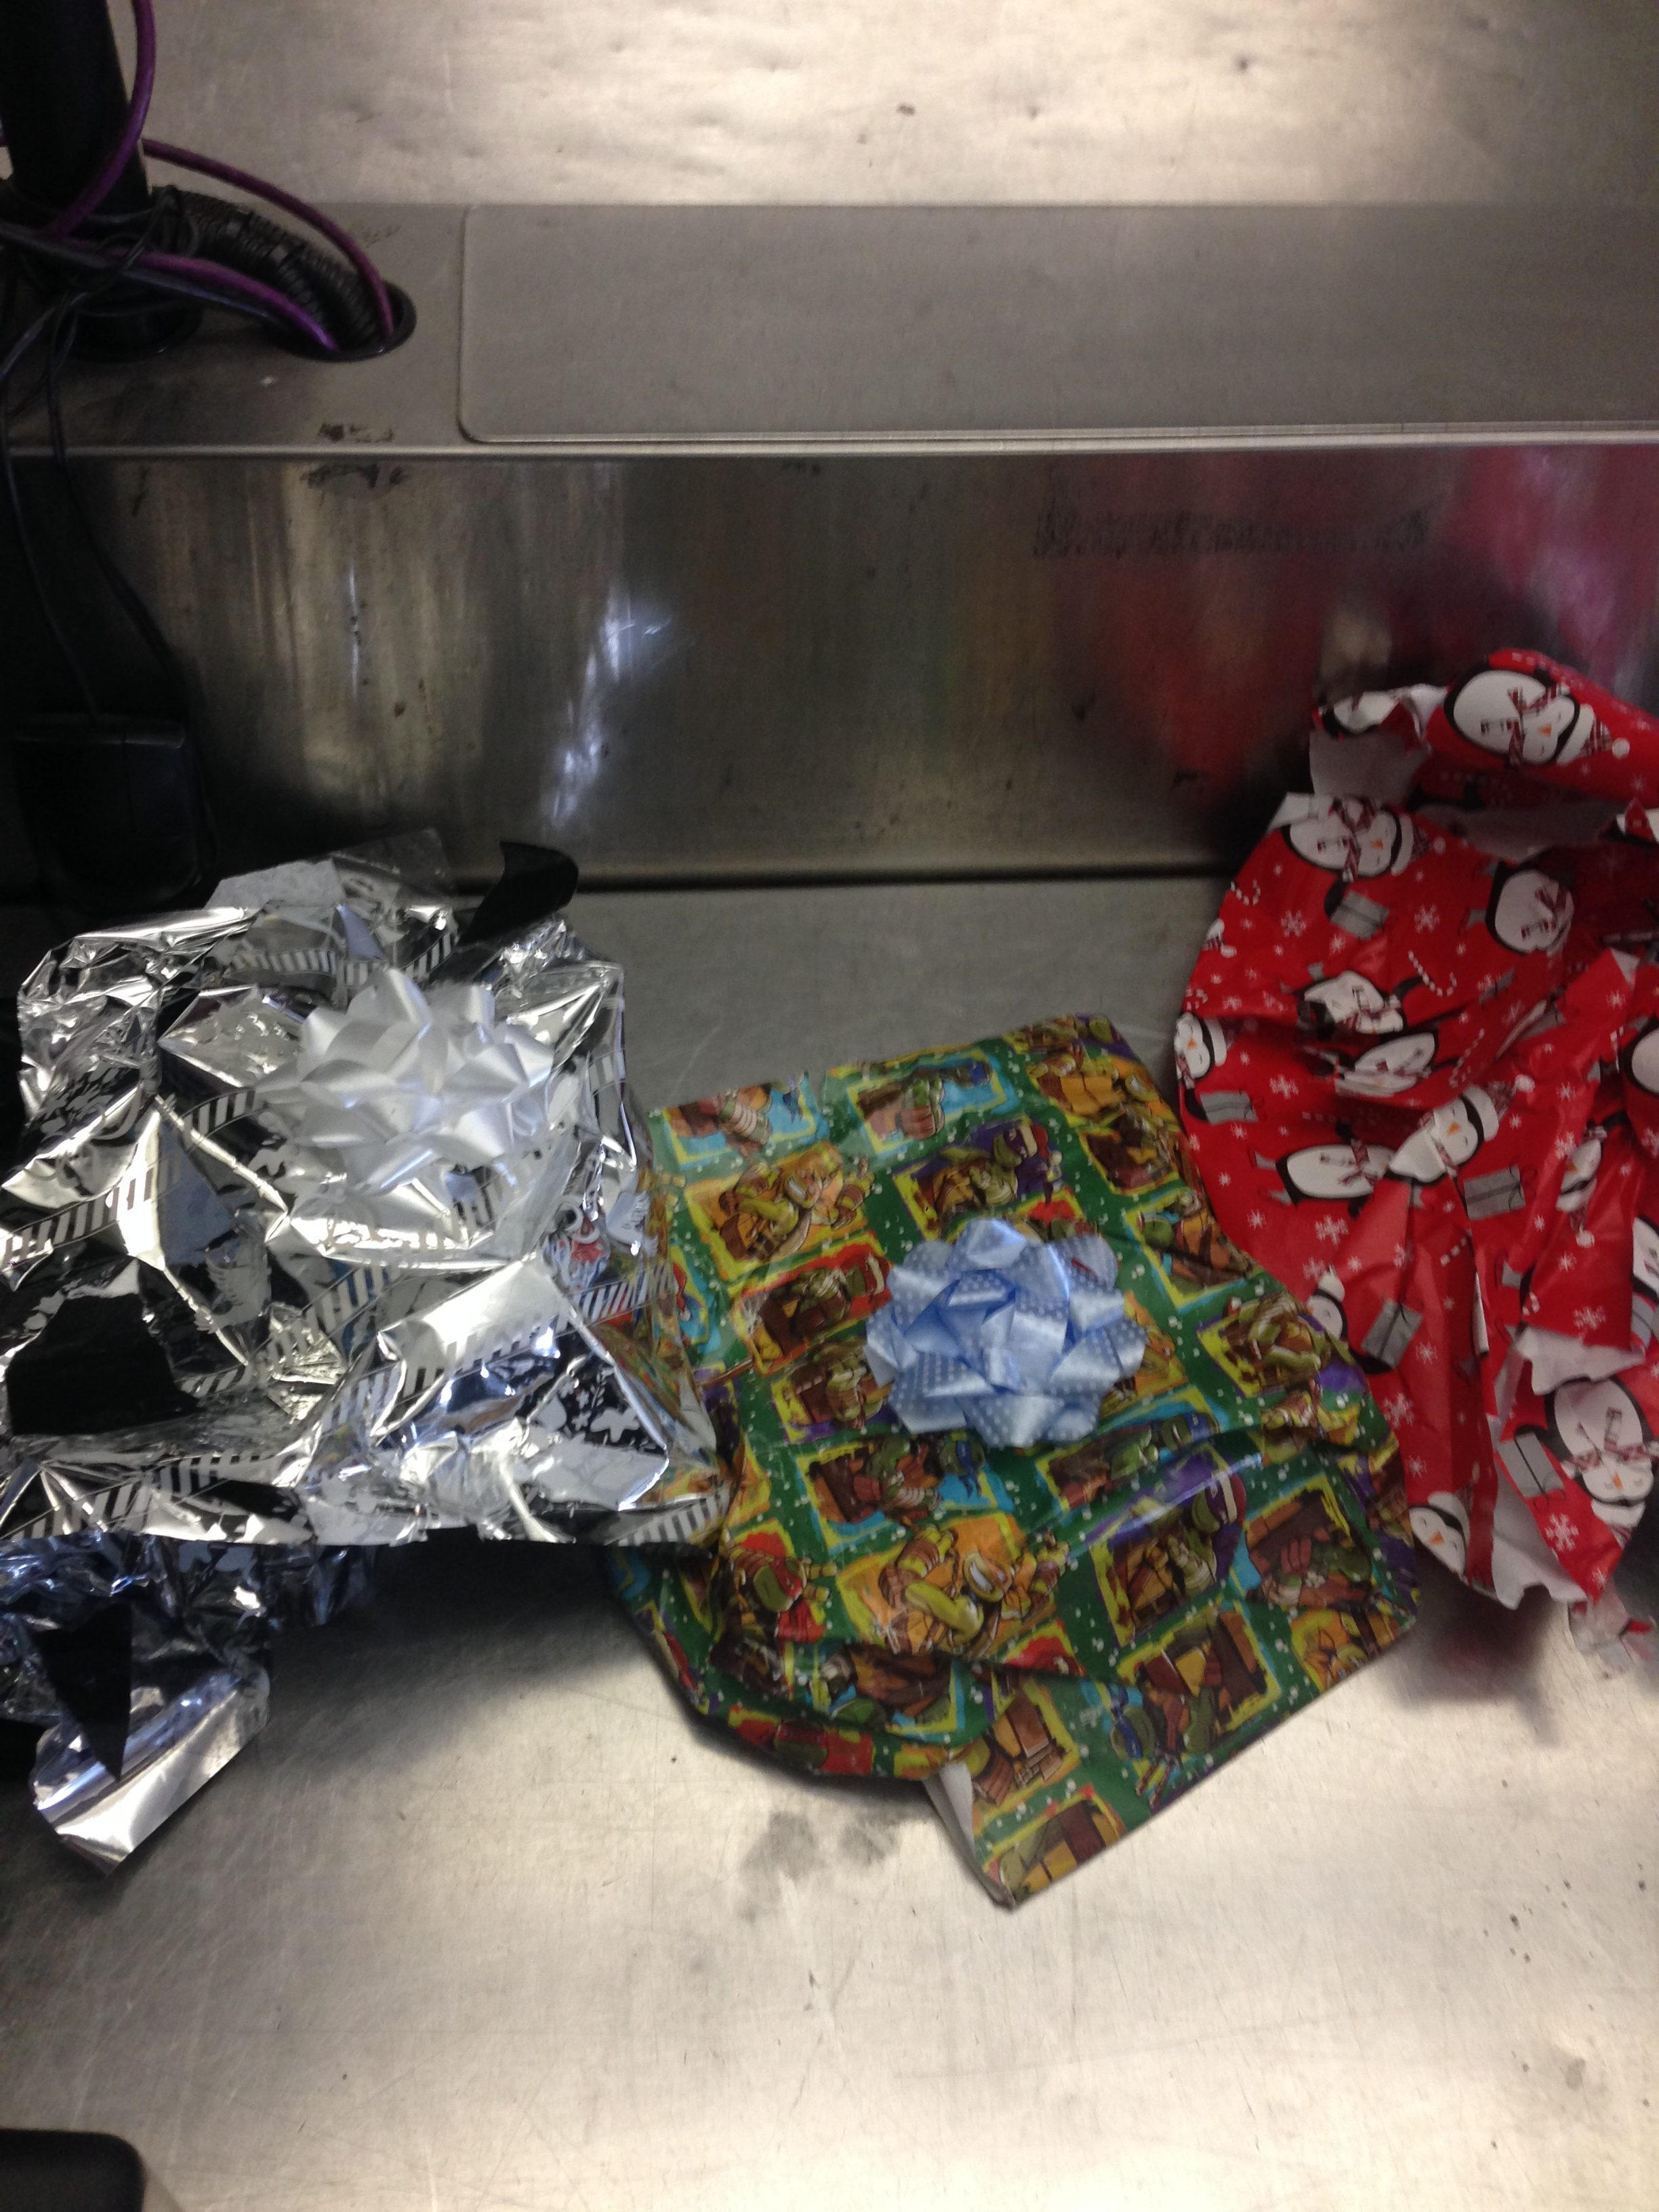 L.A. Man Tried to Smuggle Heroin Inside Christmas-Wrapped Boxes